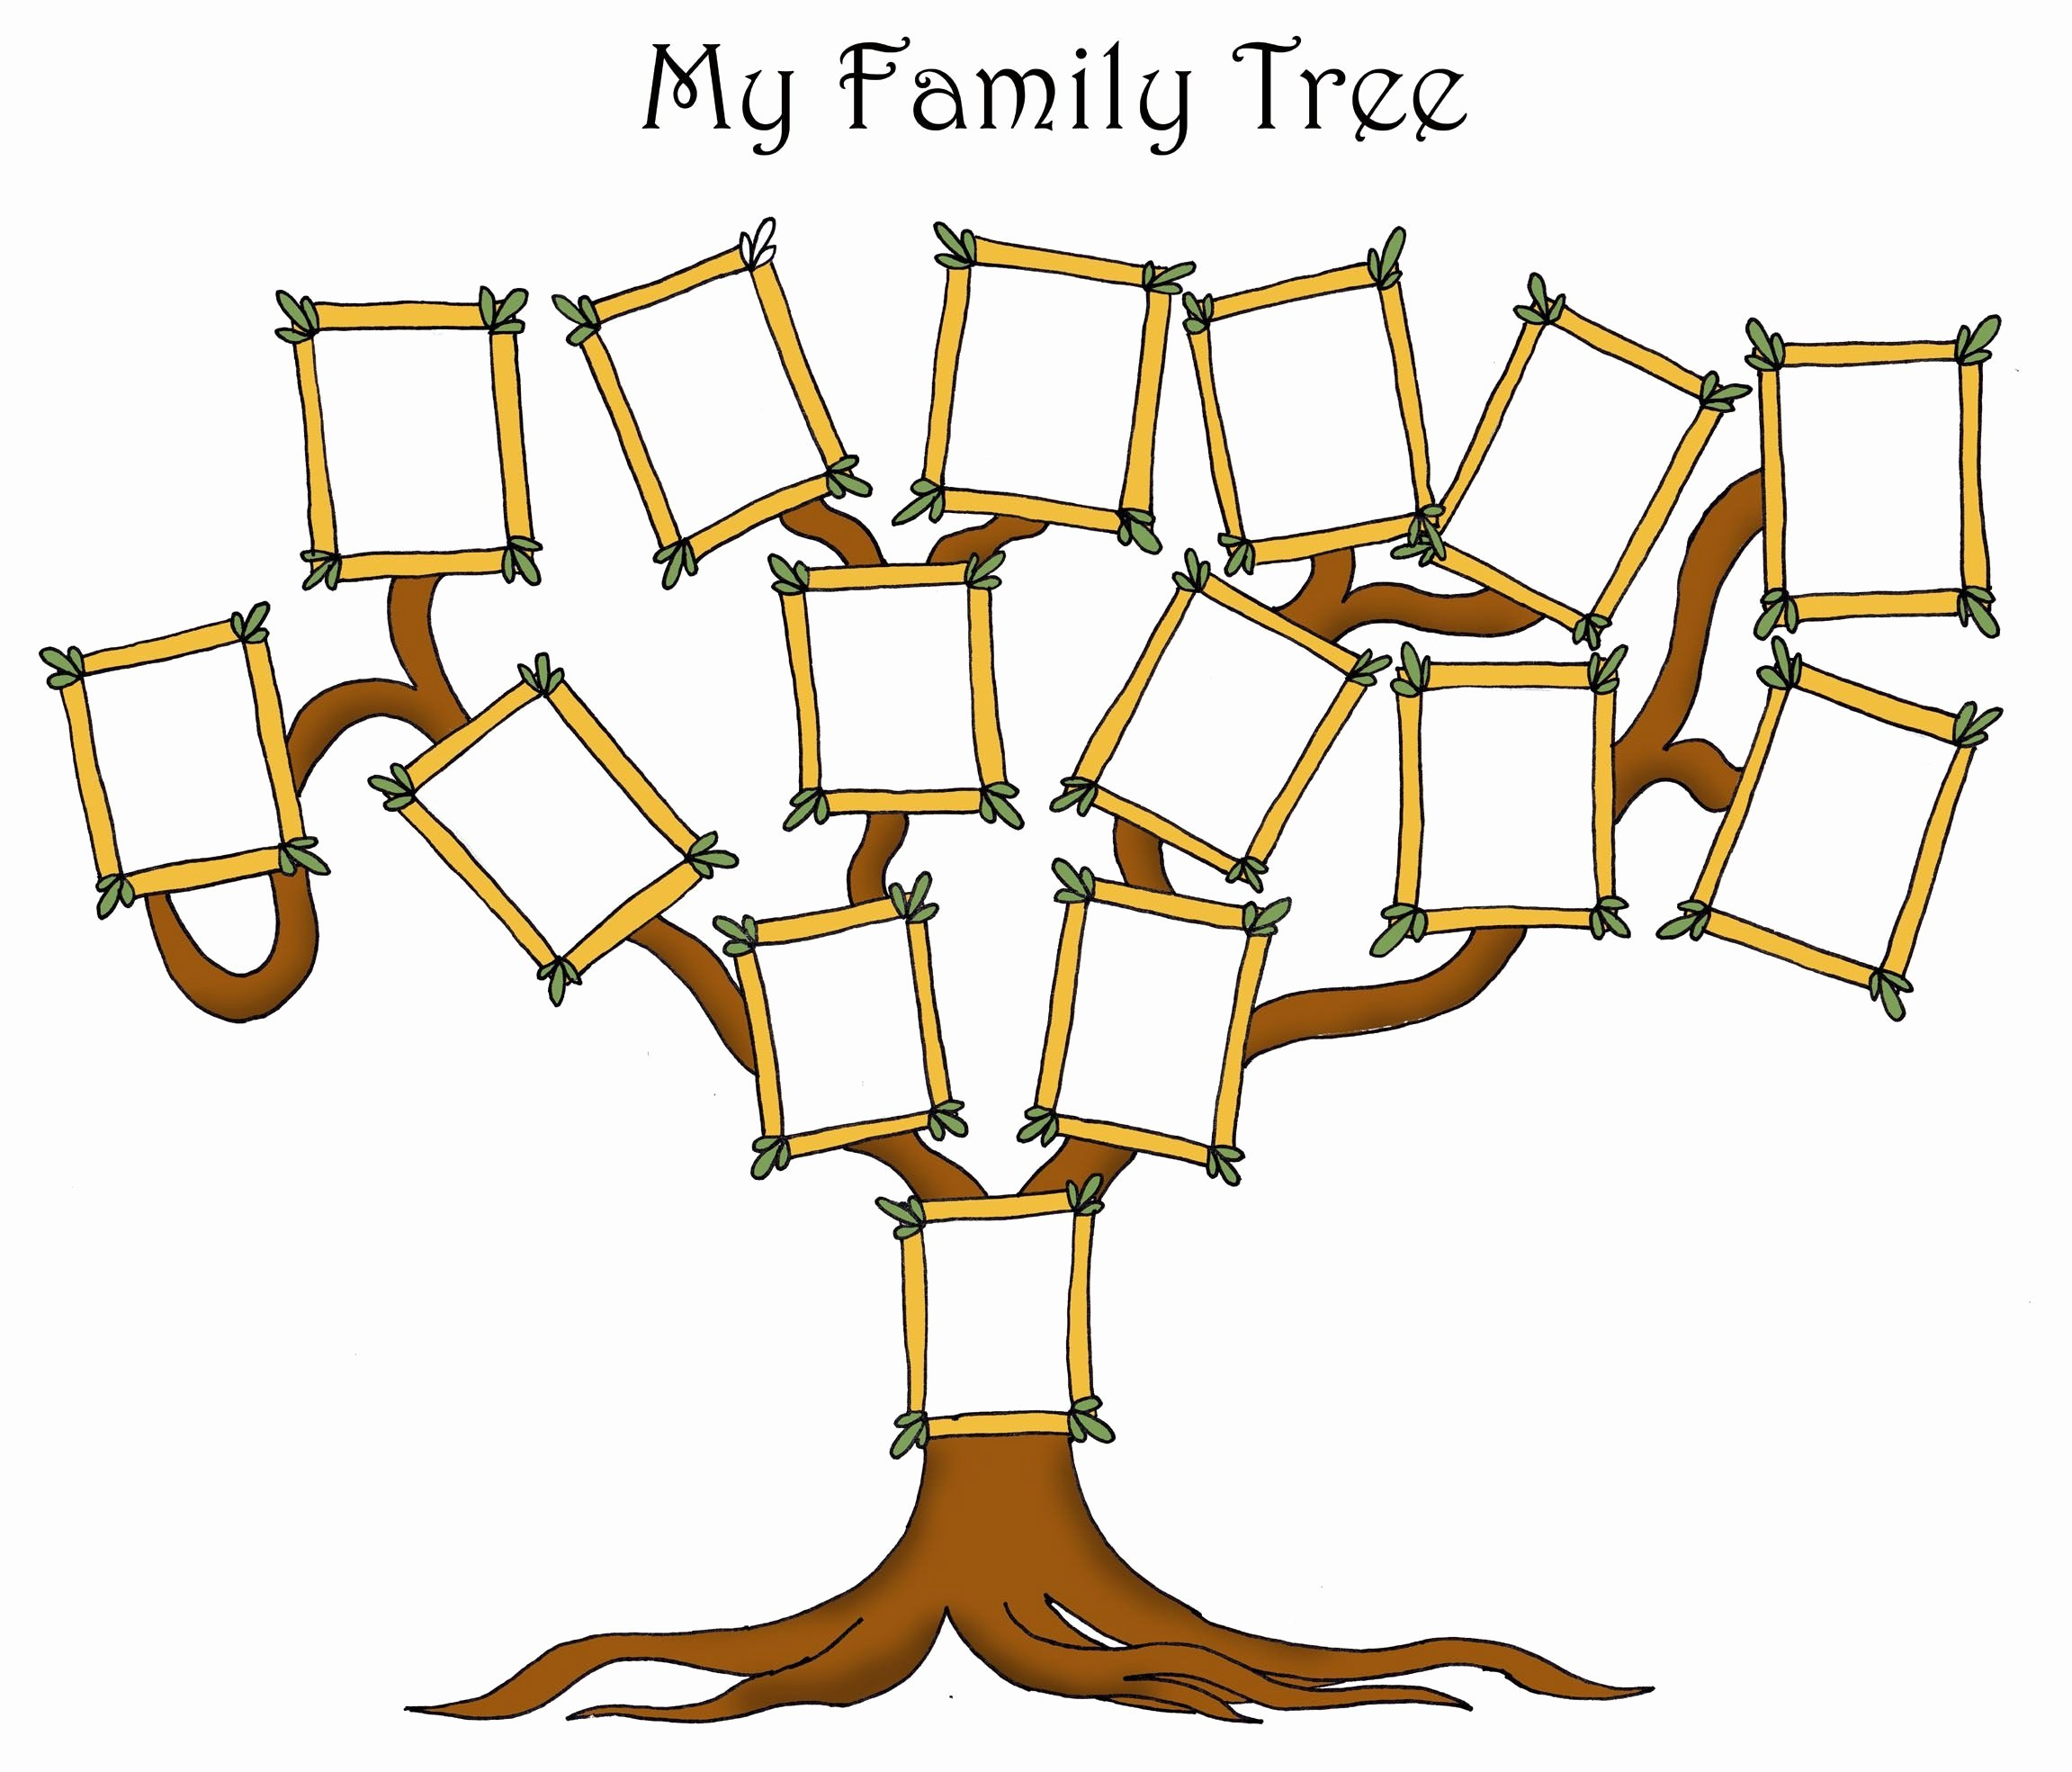 Fillable Family Tree Template Luxury Free Editable Family Tree Template Daily Roabox